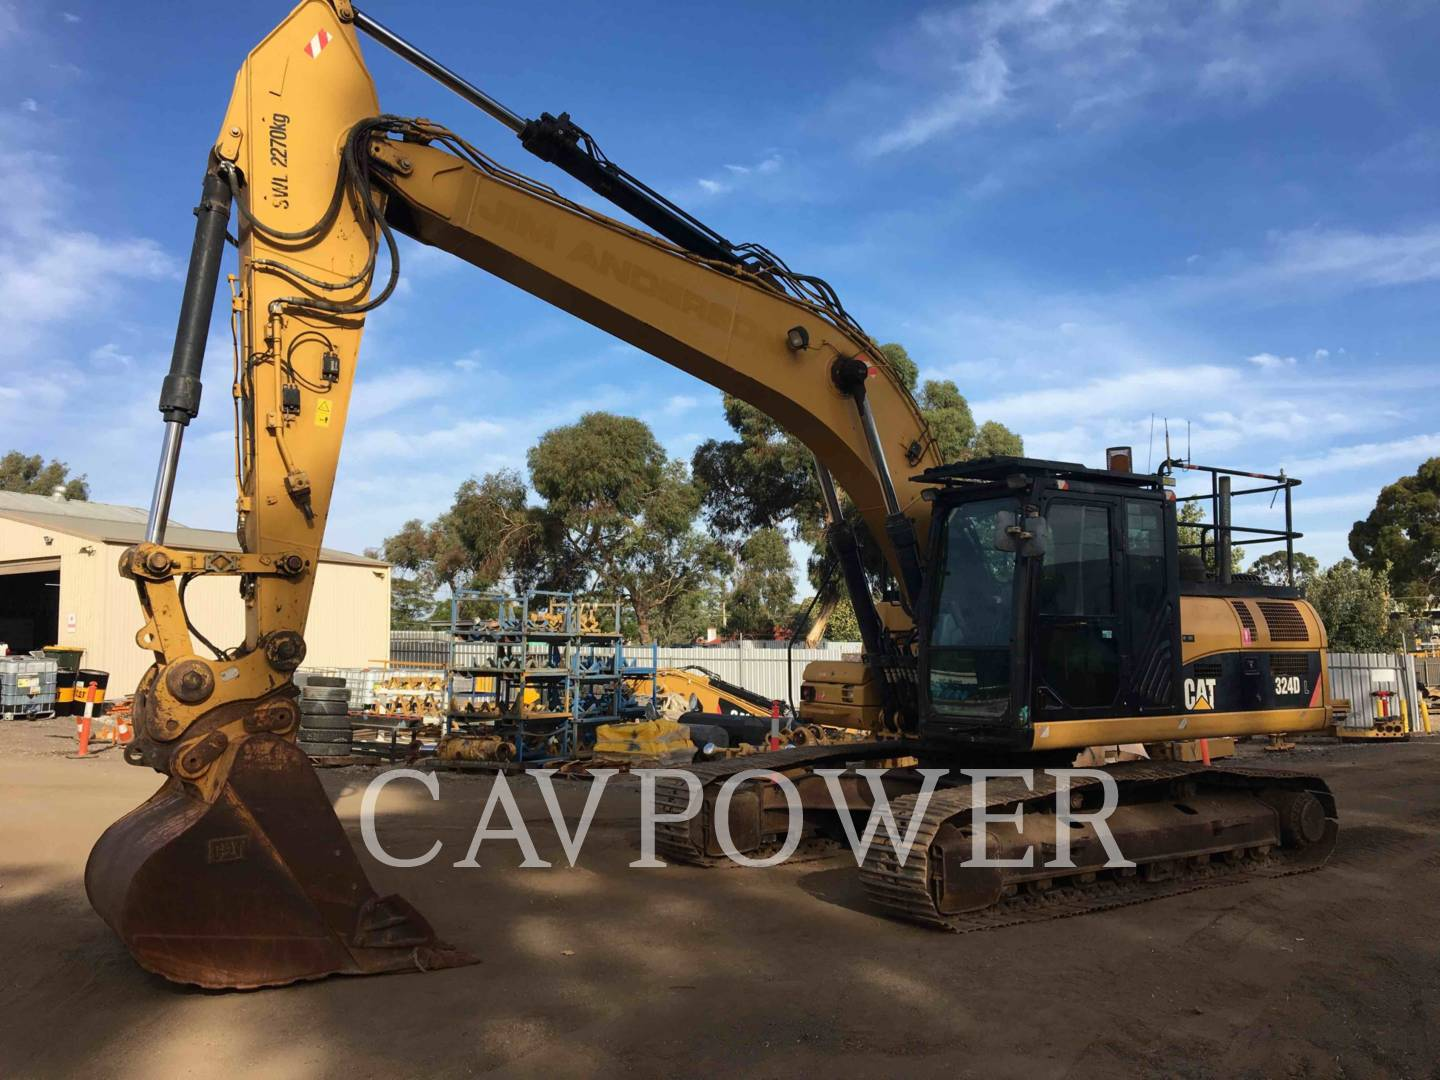 CATERPILLAR 324DL Page | Cavpower